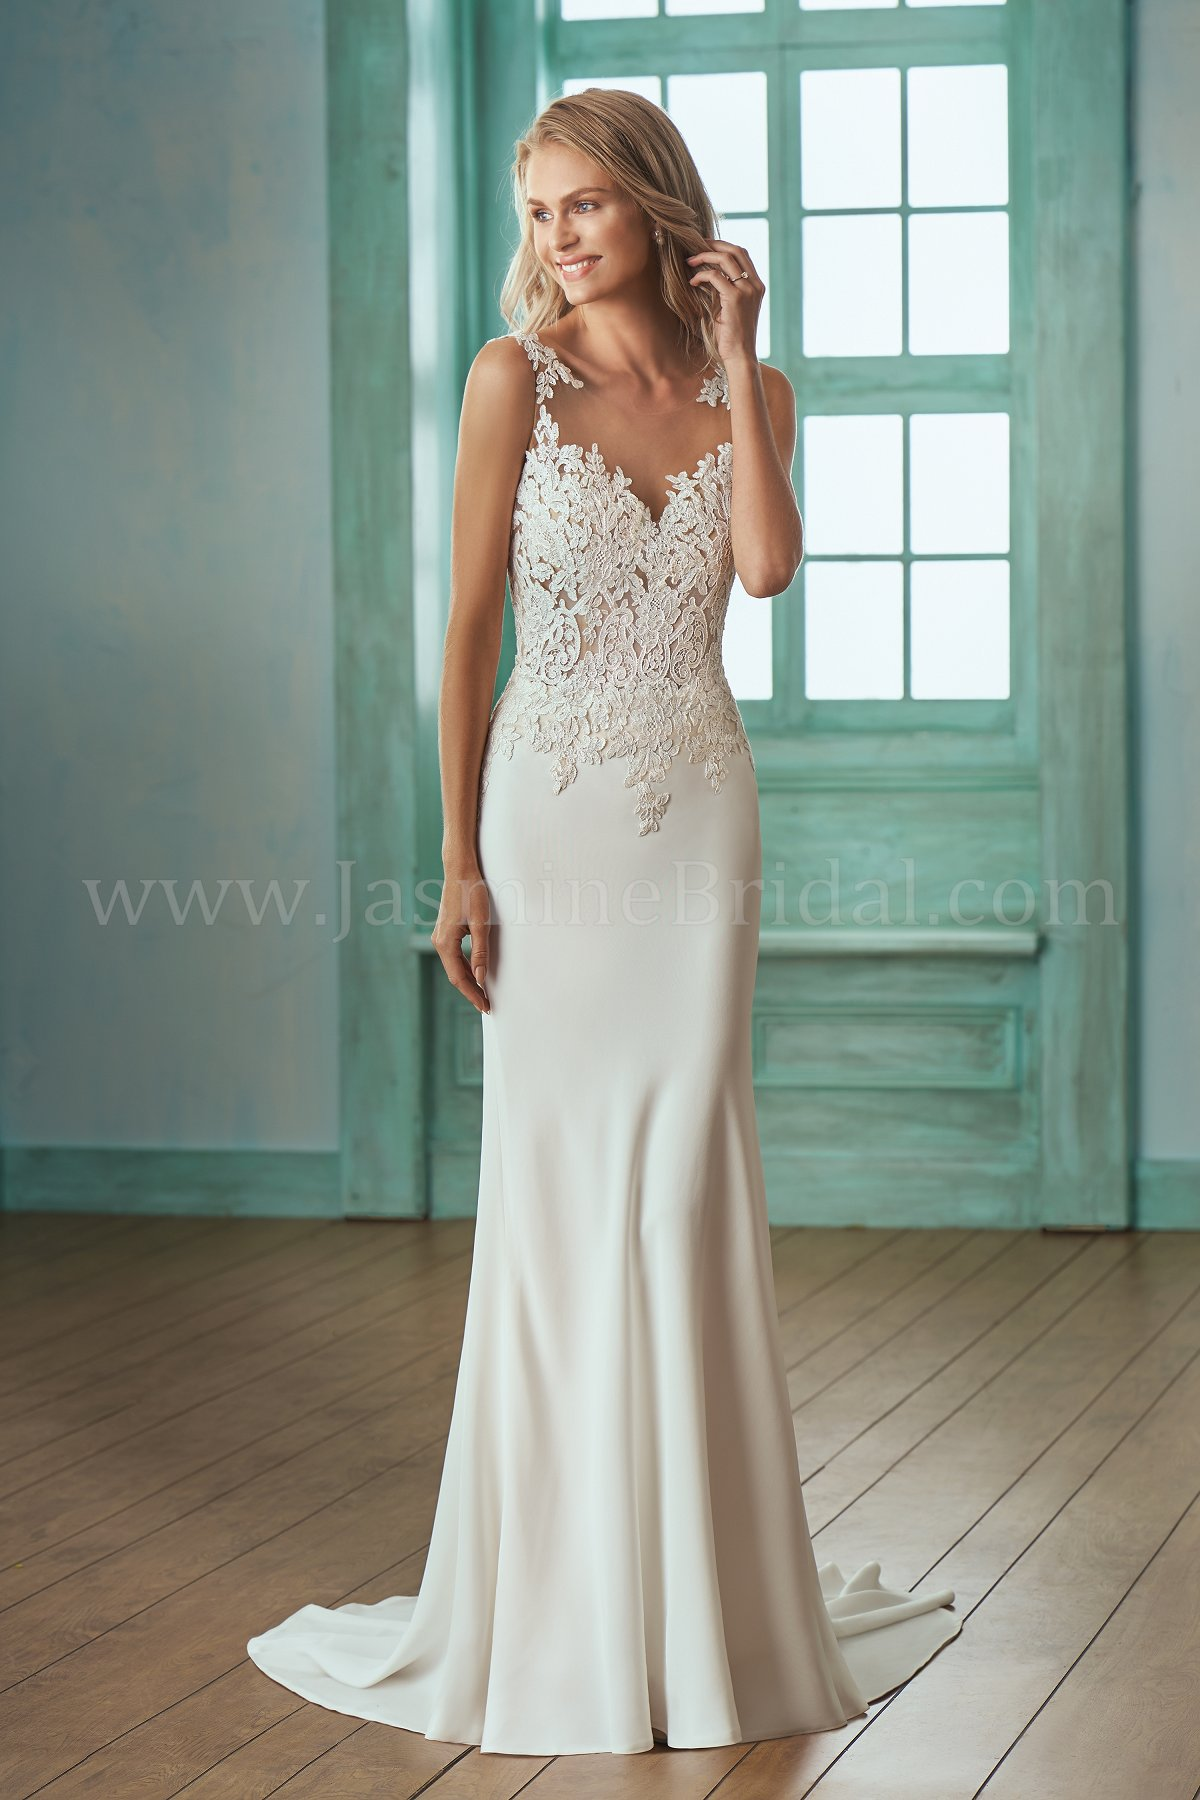 F201001 Illusion Bodice , Illusion Neckline Lace & Crepe Wedding Dress